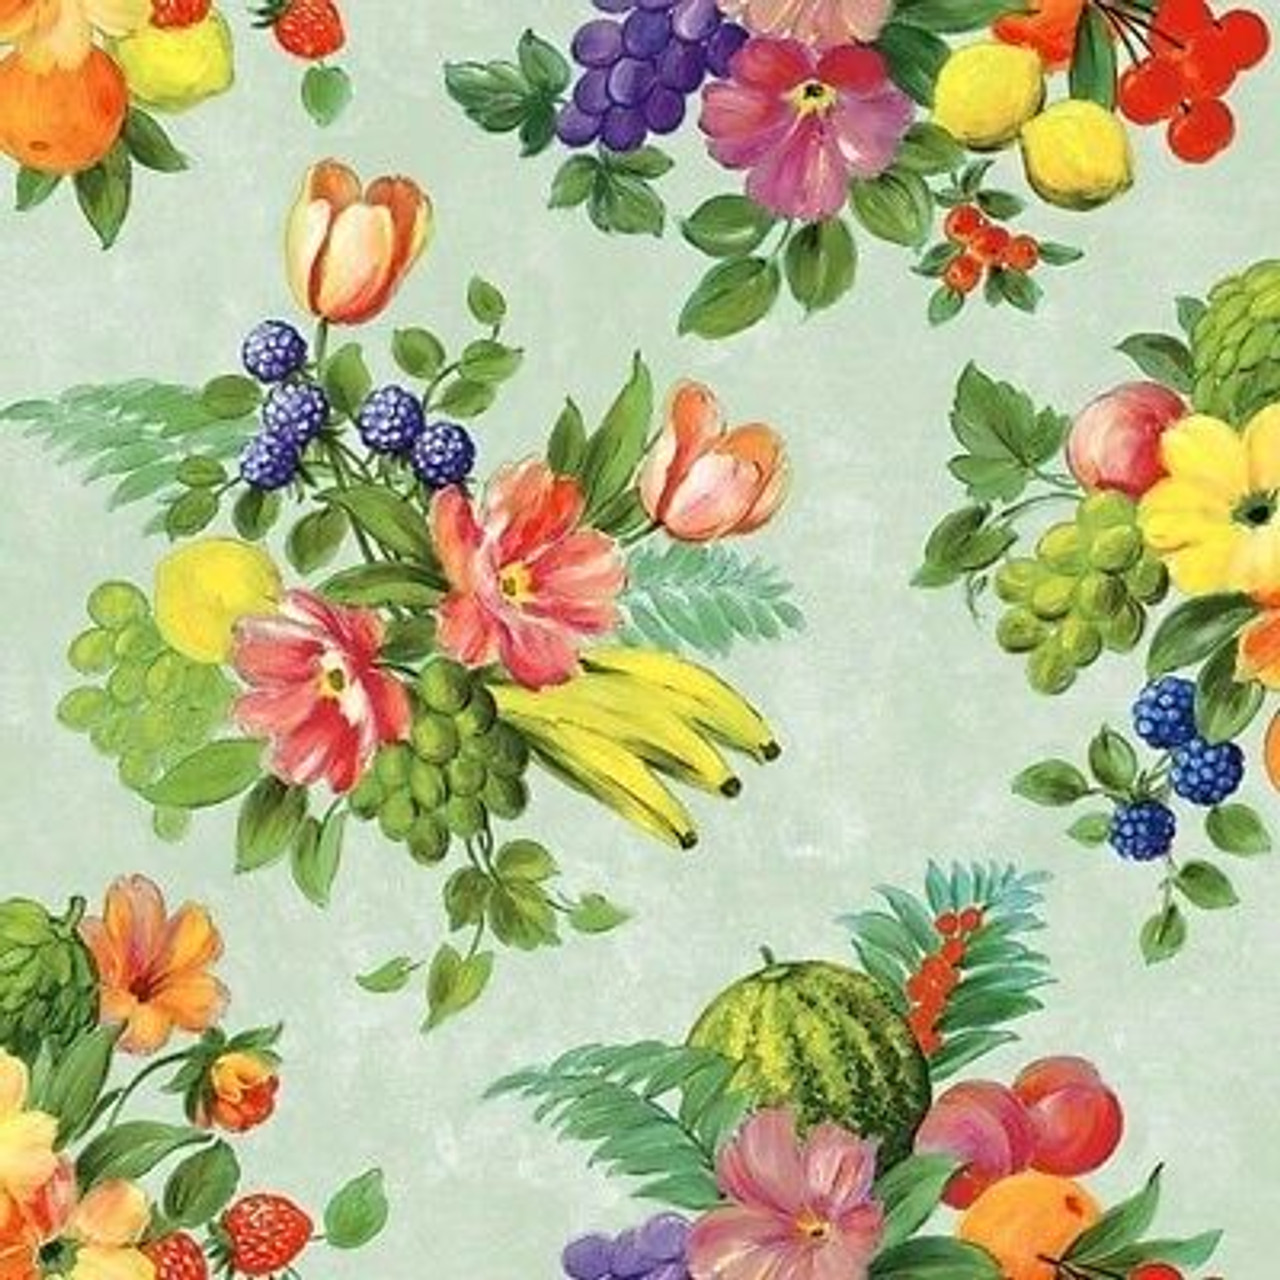 4 Lunch Paper Napkins for Decoupage Table Craft Vintage Fruit /& Flowers